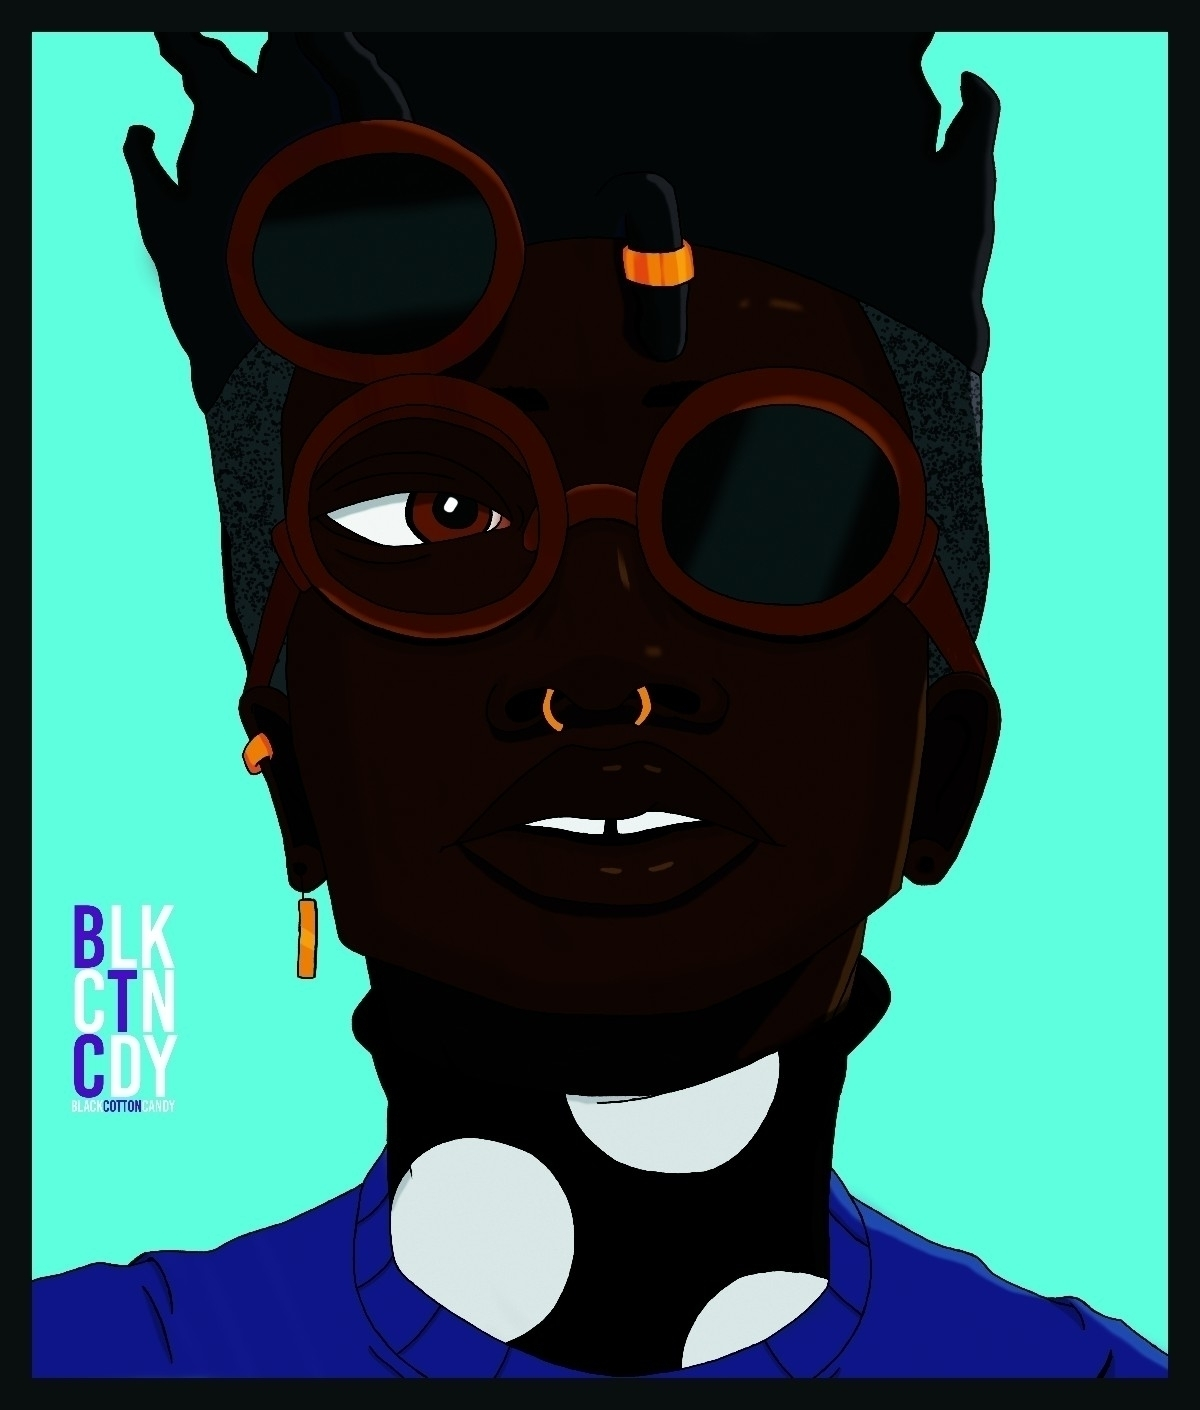 COOL BLACK BOYS 001 - ART, DIGITALART - blackcottoncandy | ello